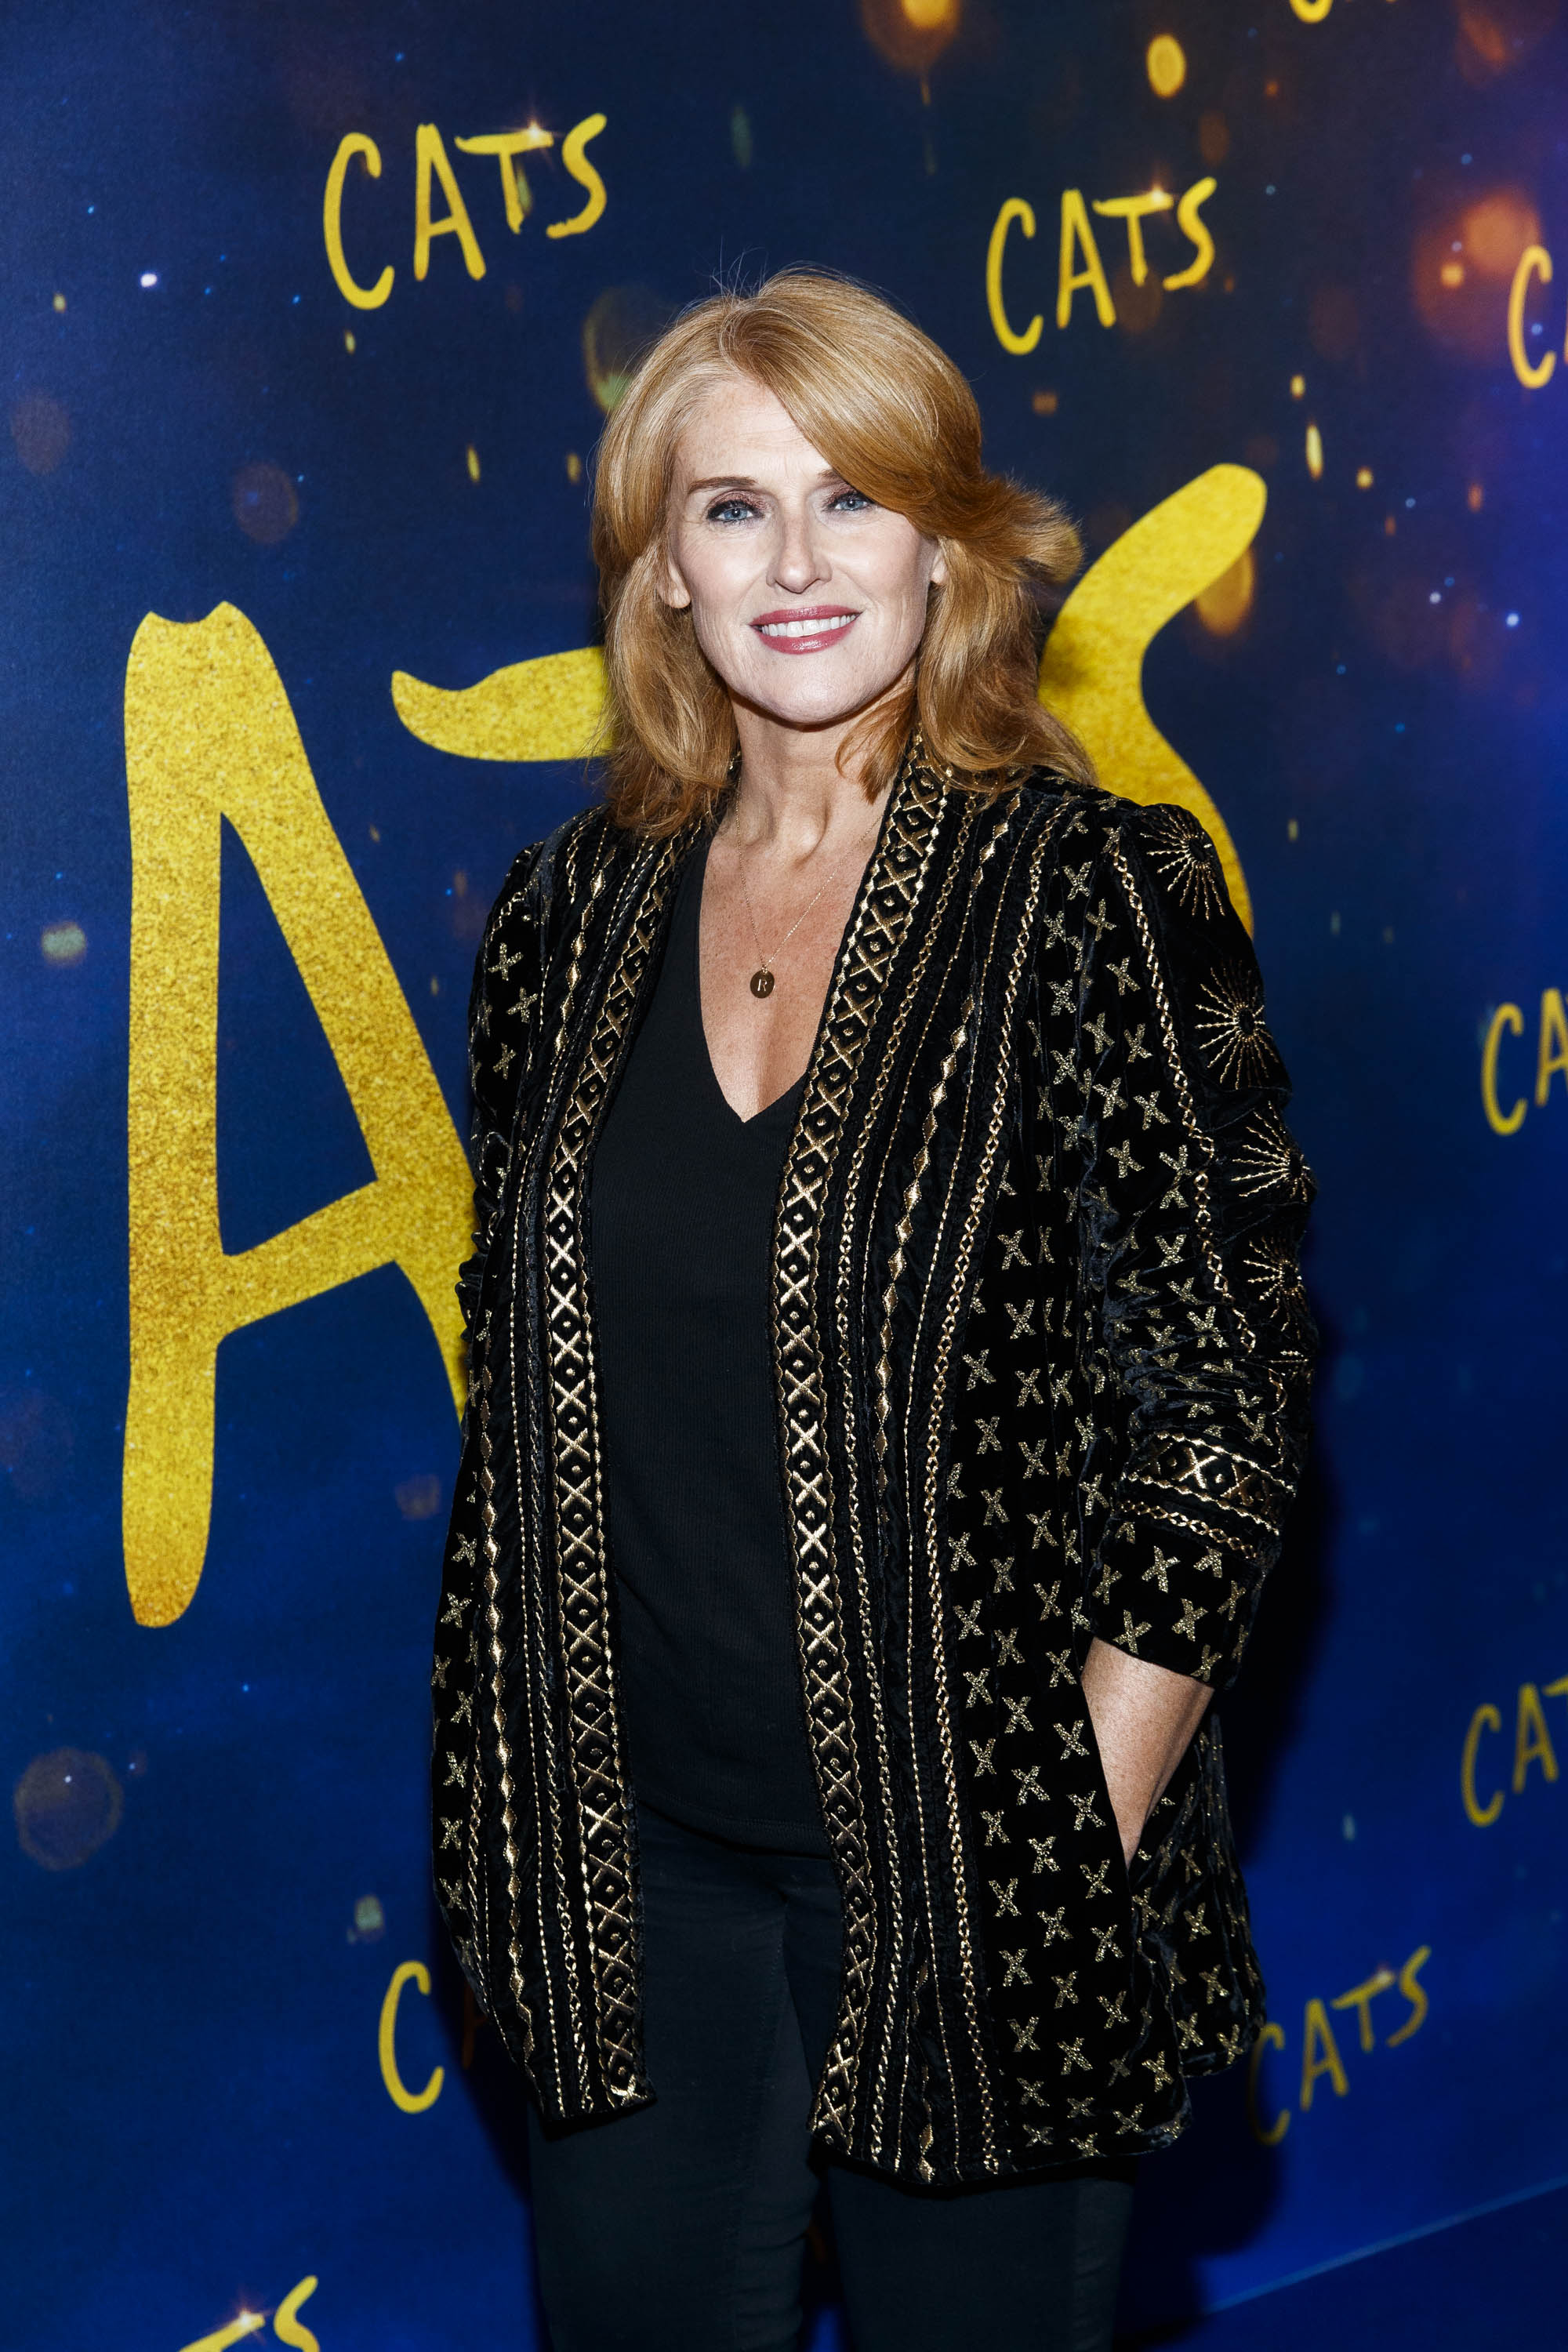 Roisin O'Hea pictured at the Irish premiere screening of 'Cats' at The Stella Theatre, Rathmines. Picture: Andres Poveda